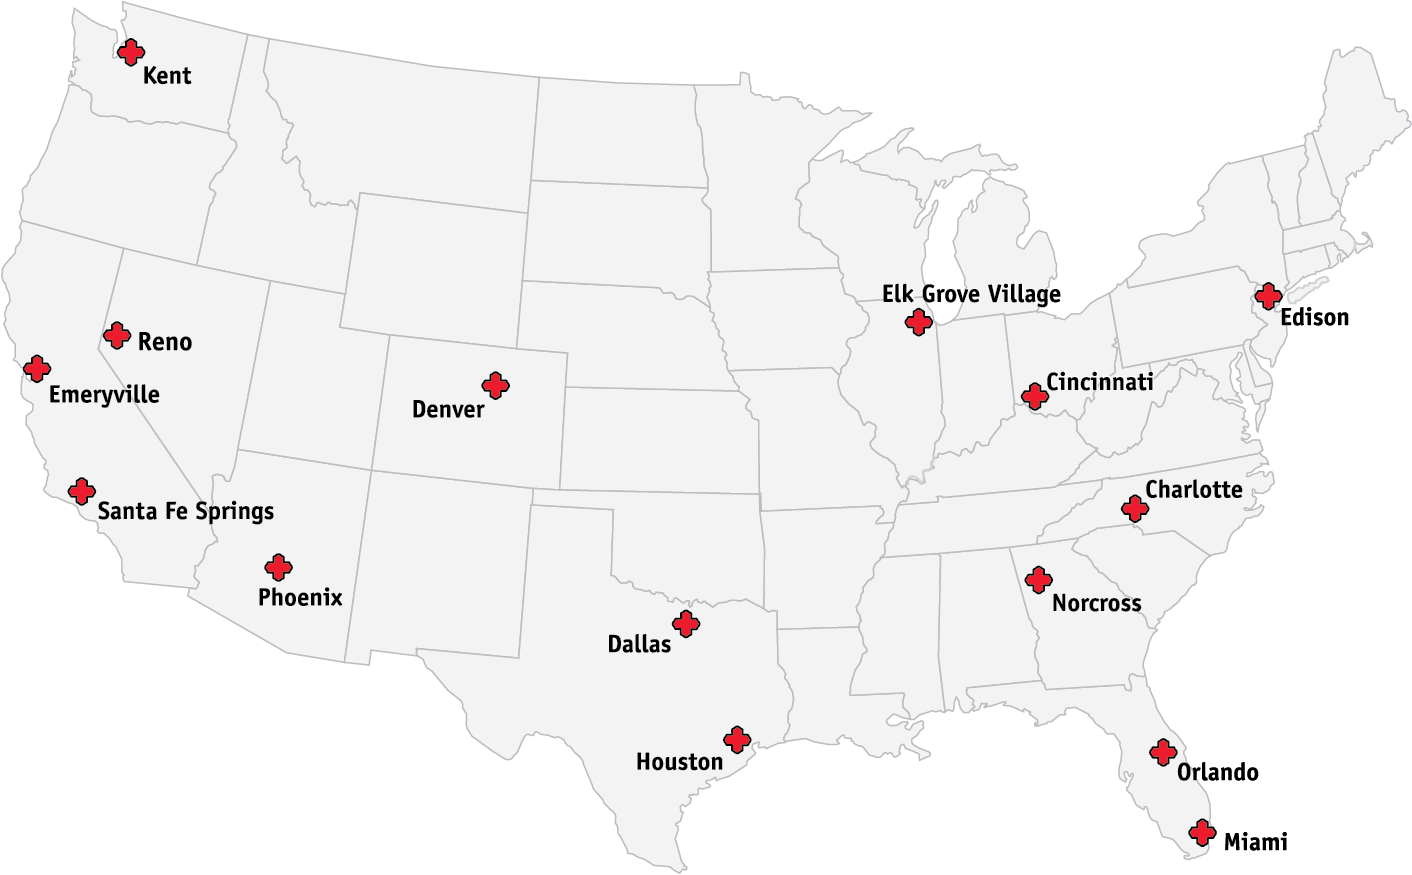 Brooks Map of Locations